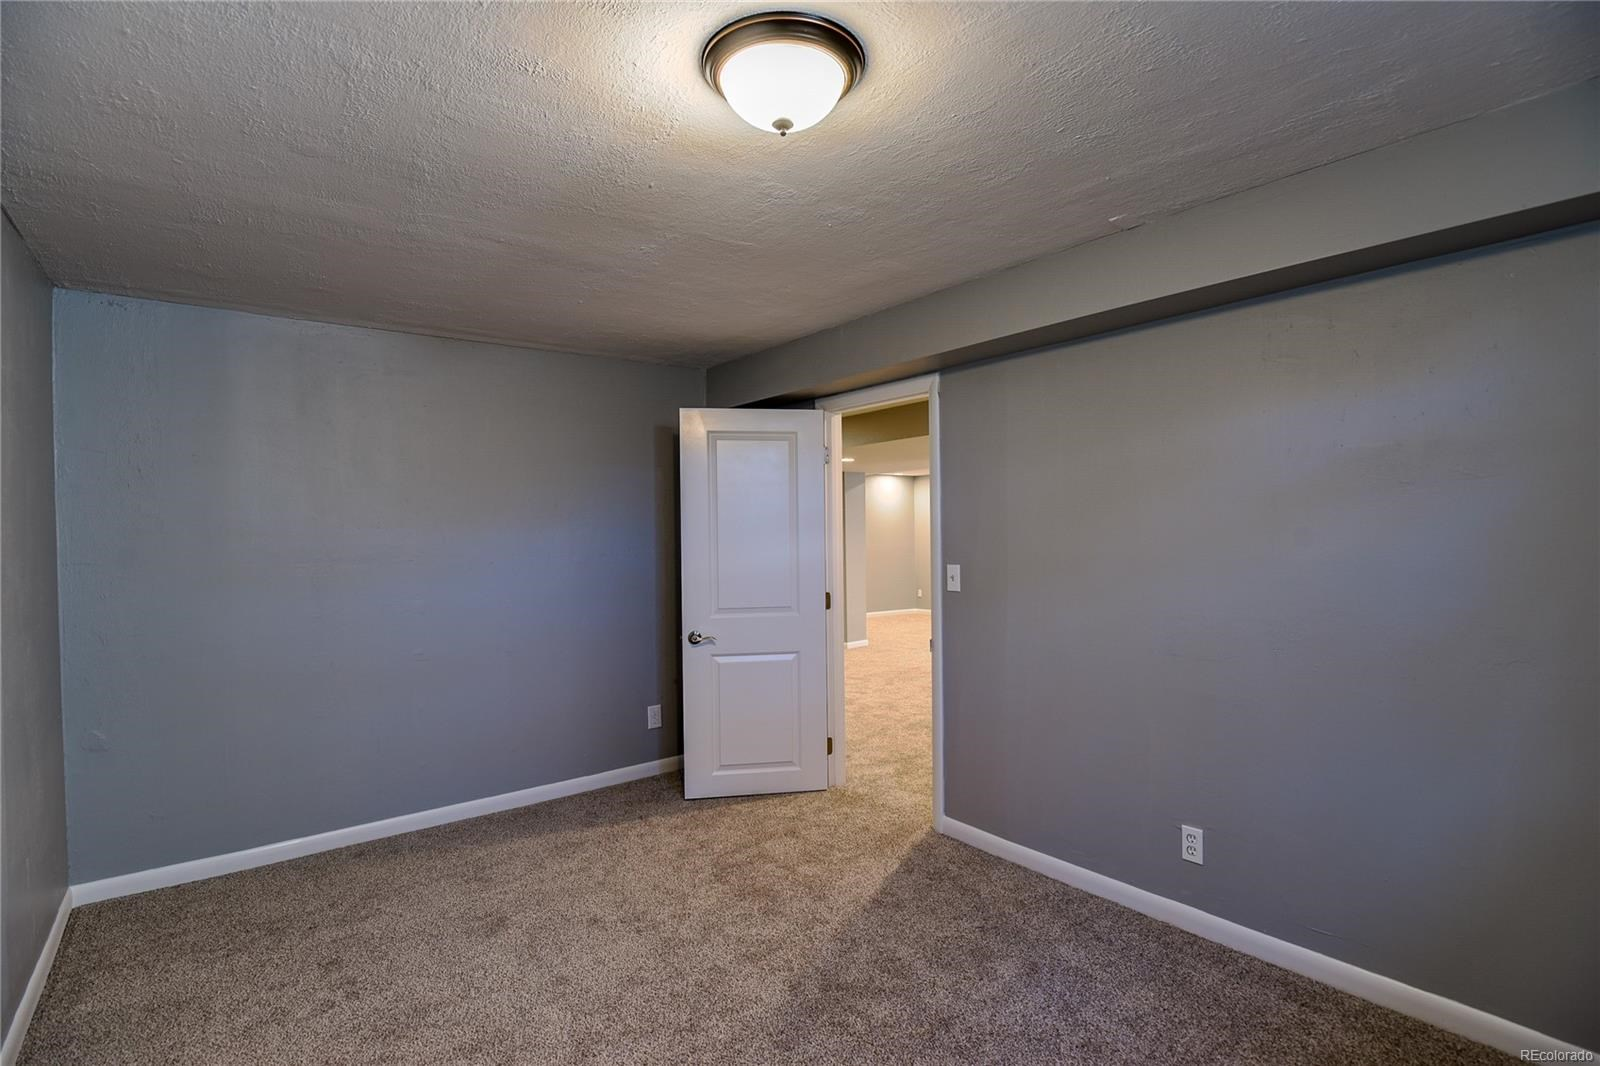 MLS# 8183776 - 26 - 2547 W 104th Circle, Westminster, CO 80234